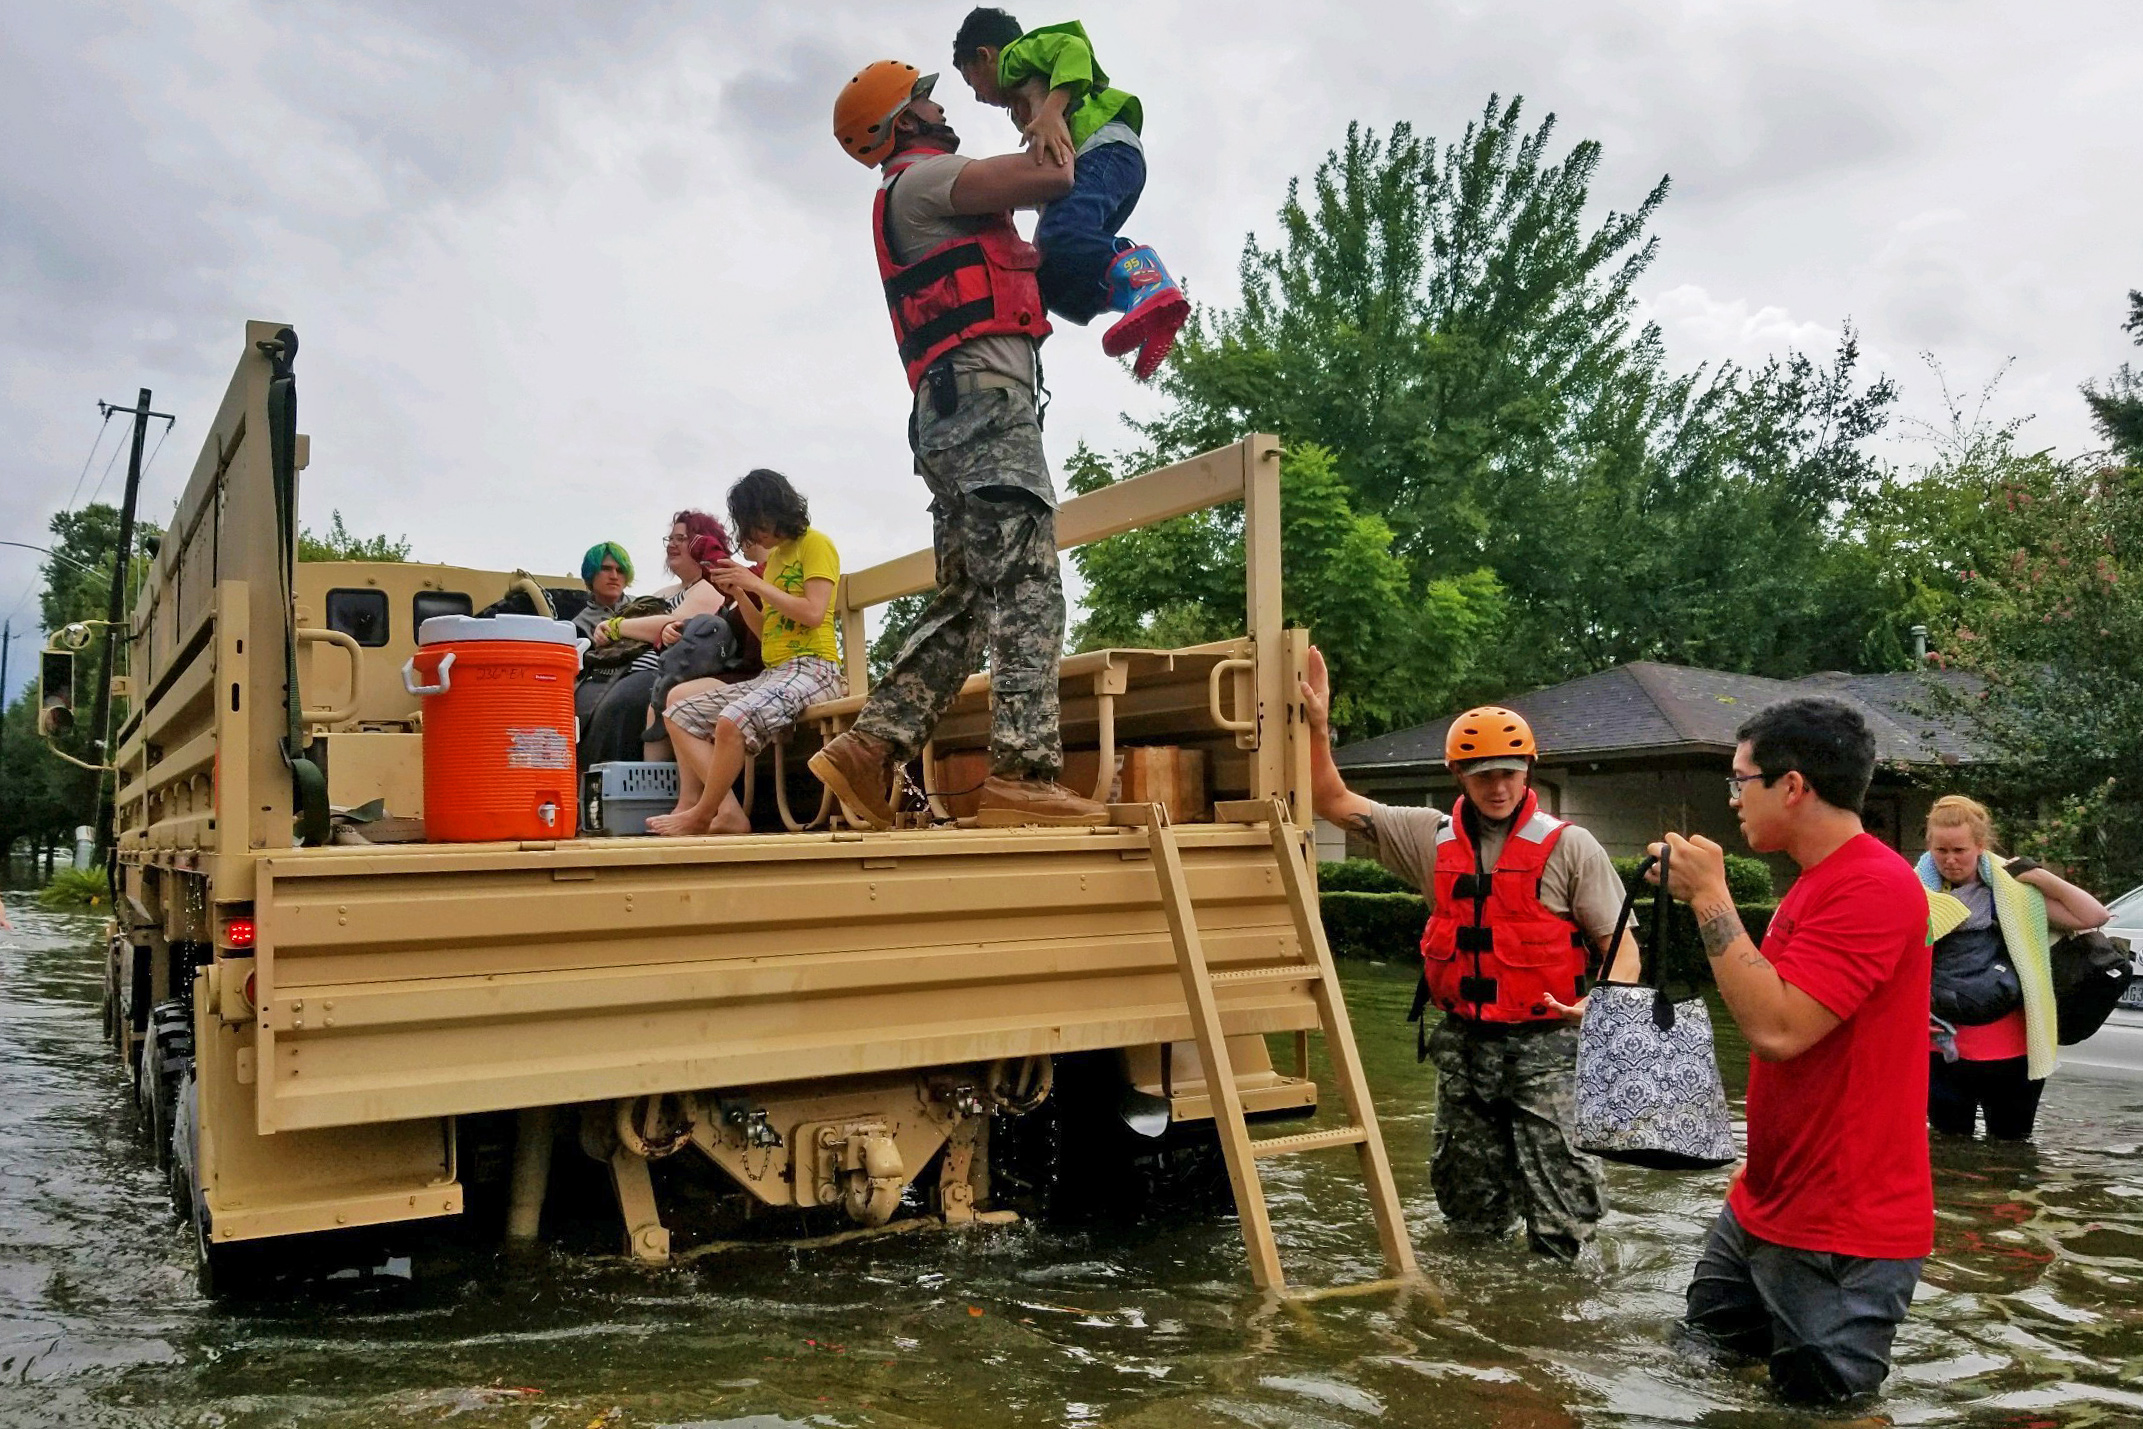 Texas National Guard Soldiers rescue Texans in Flooded Areas